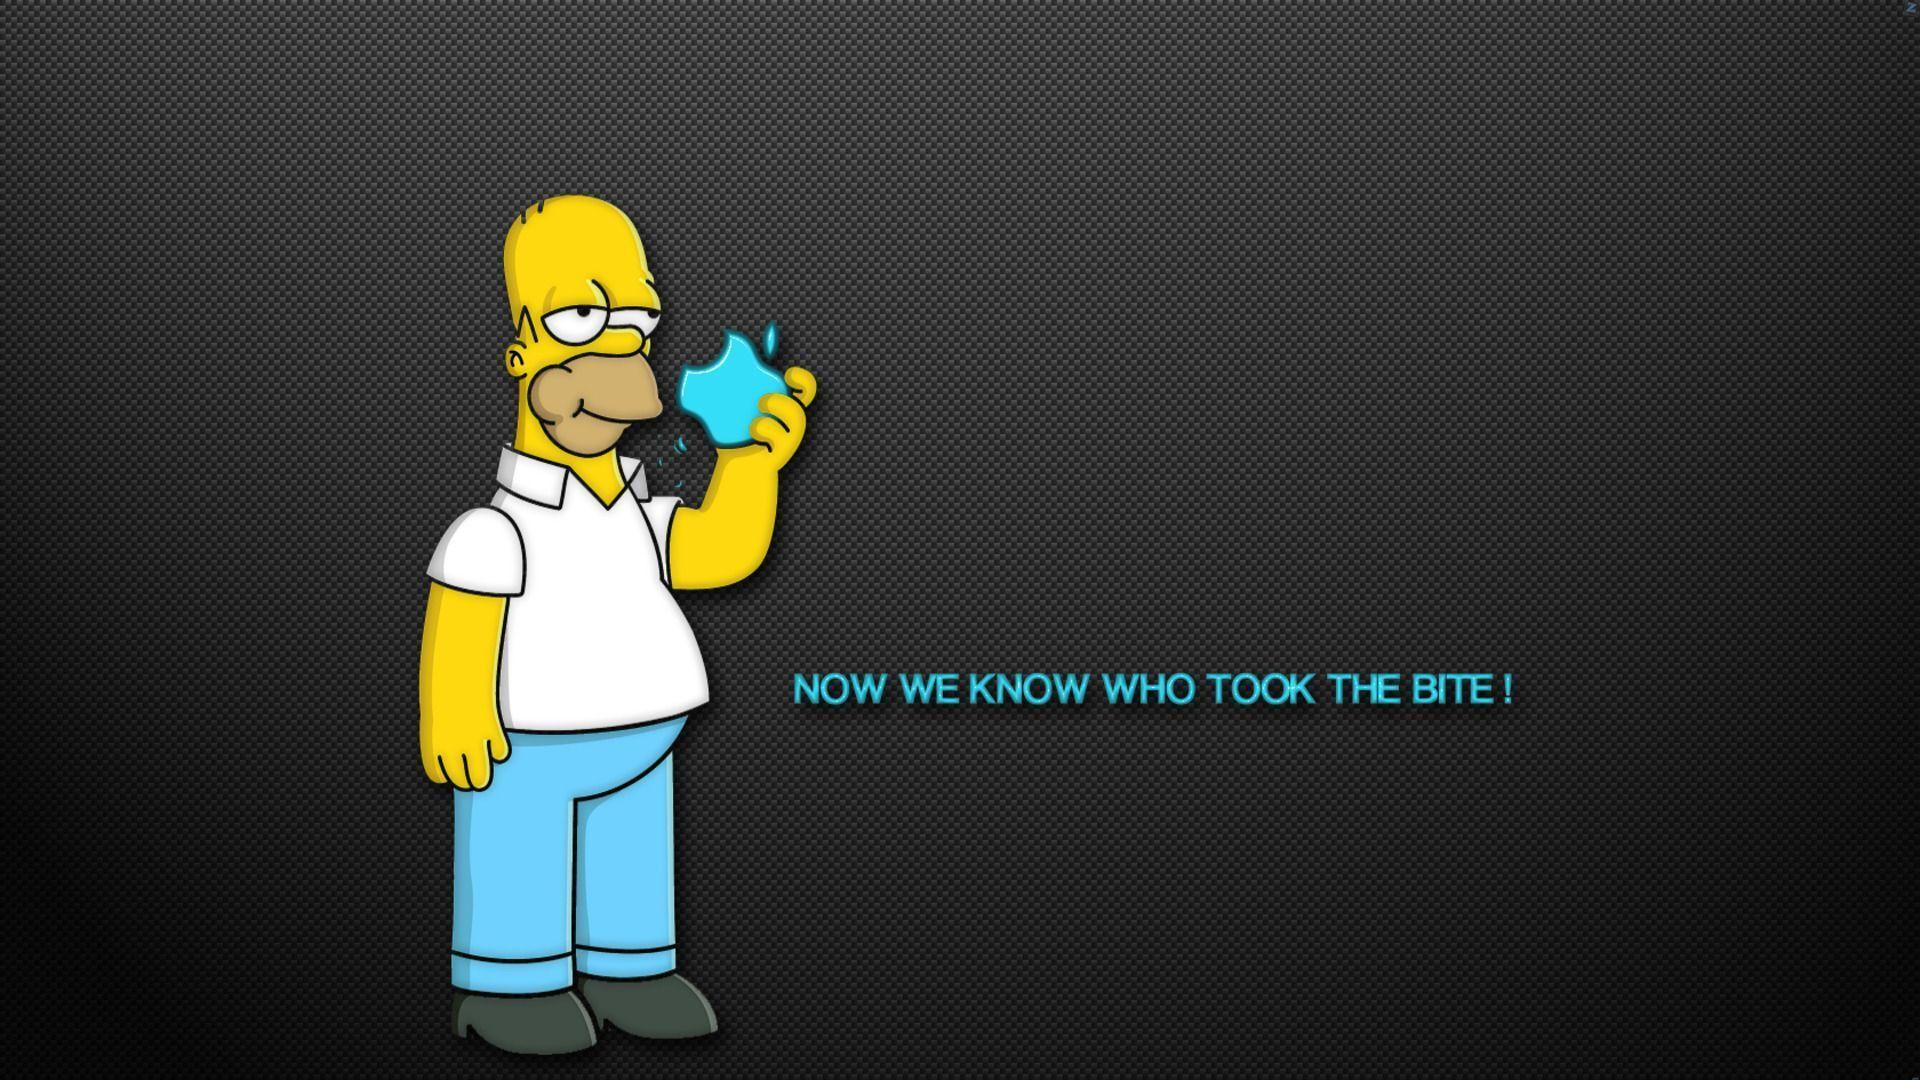 The Simpsons Homer Apple Humor Funny Text Quotes Cartoon Wallpaper .